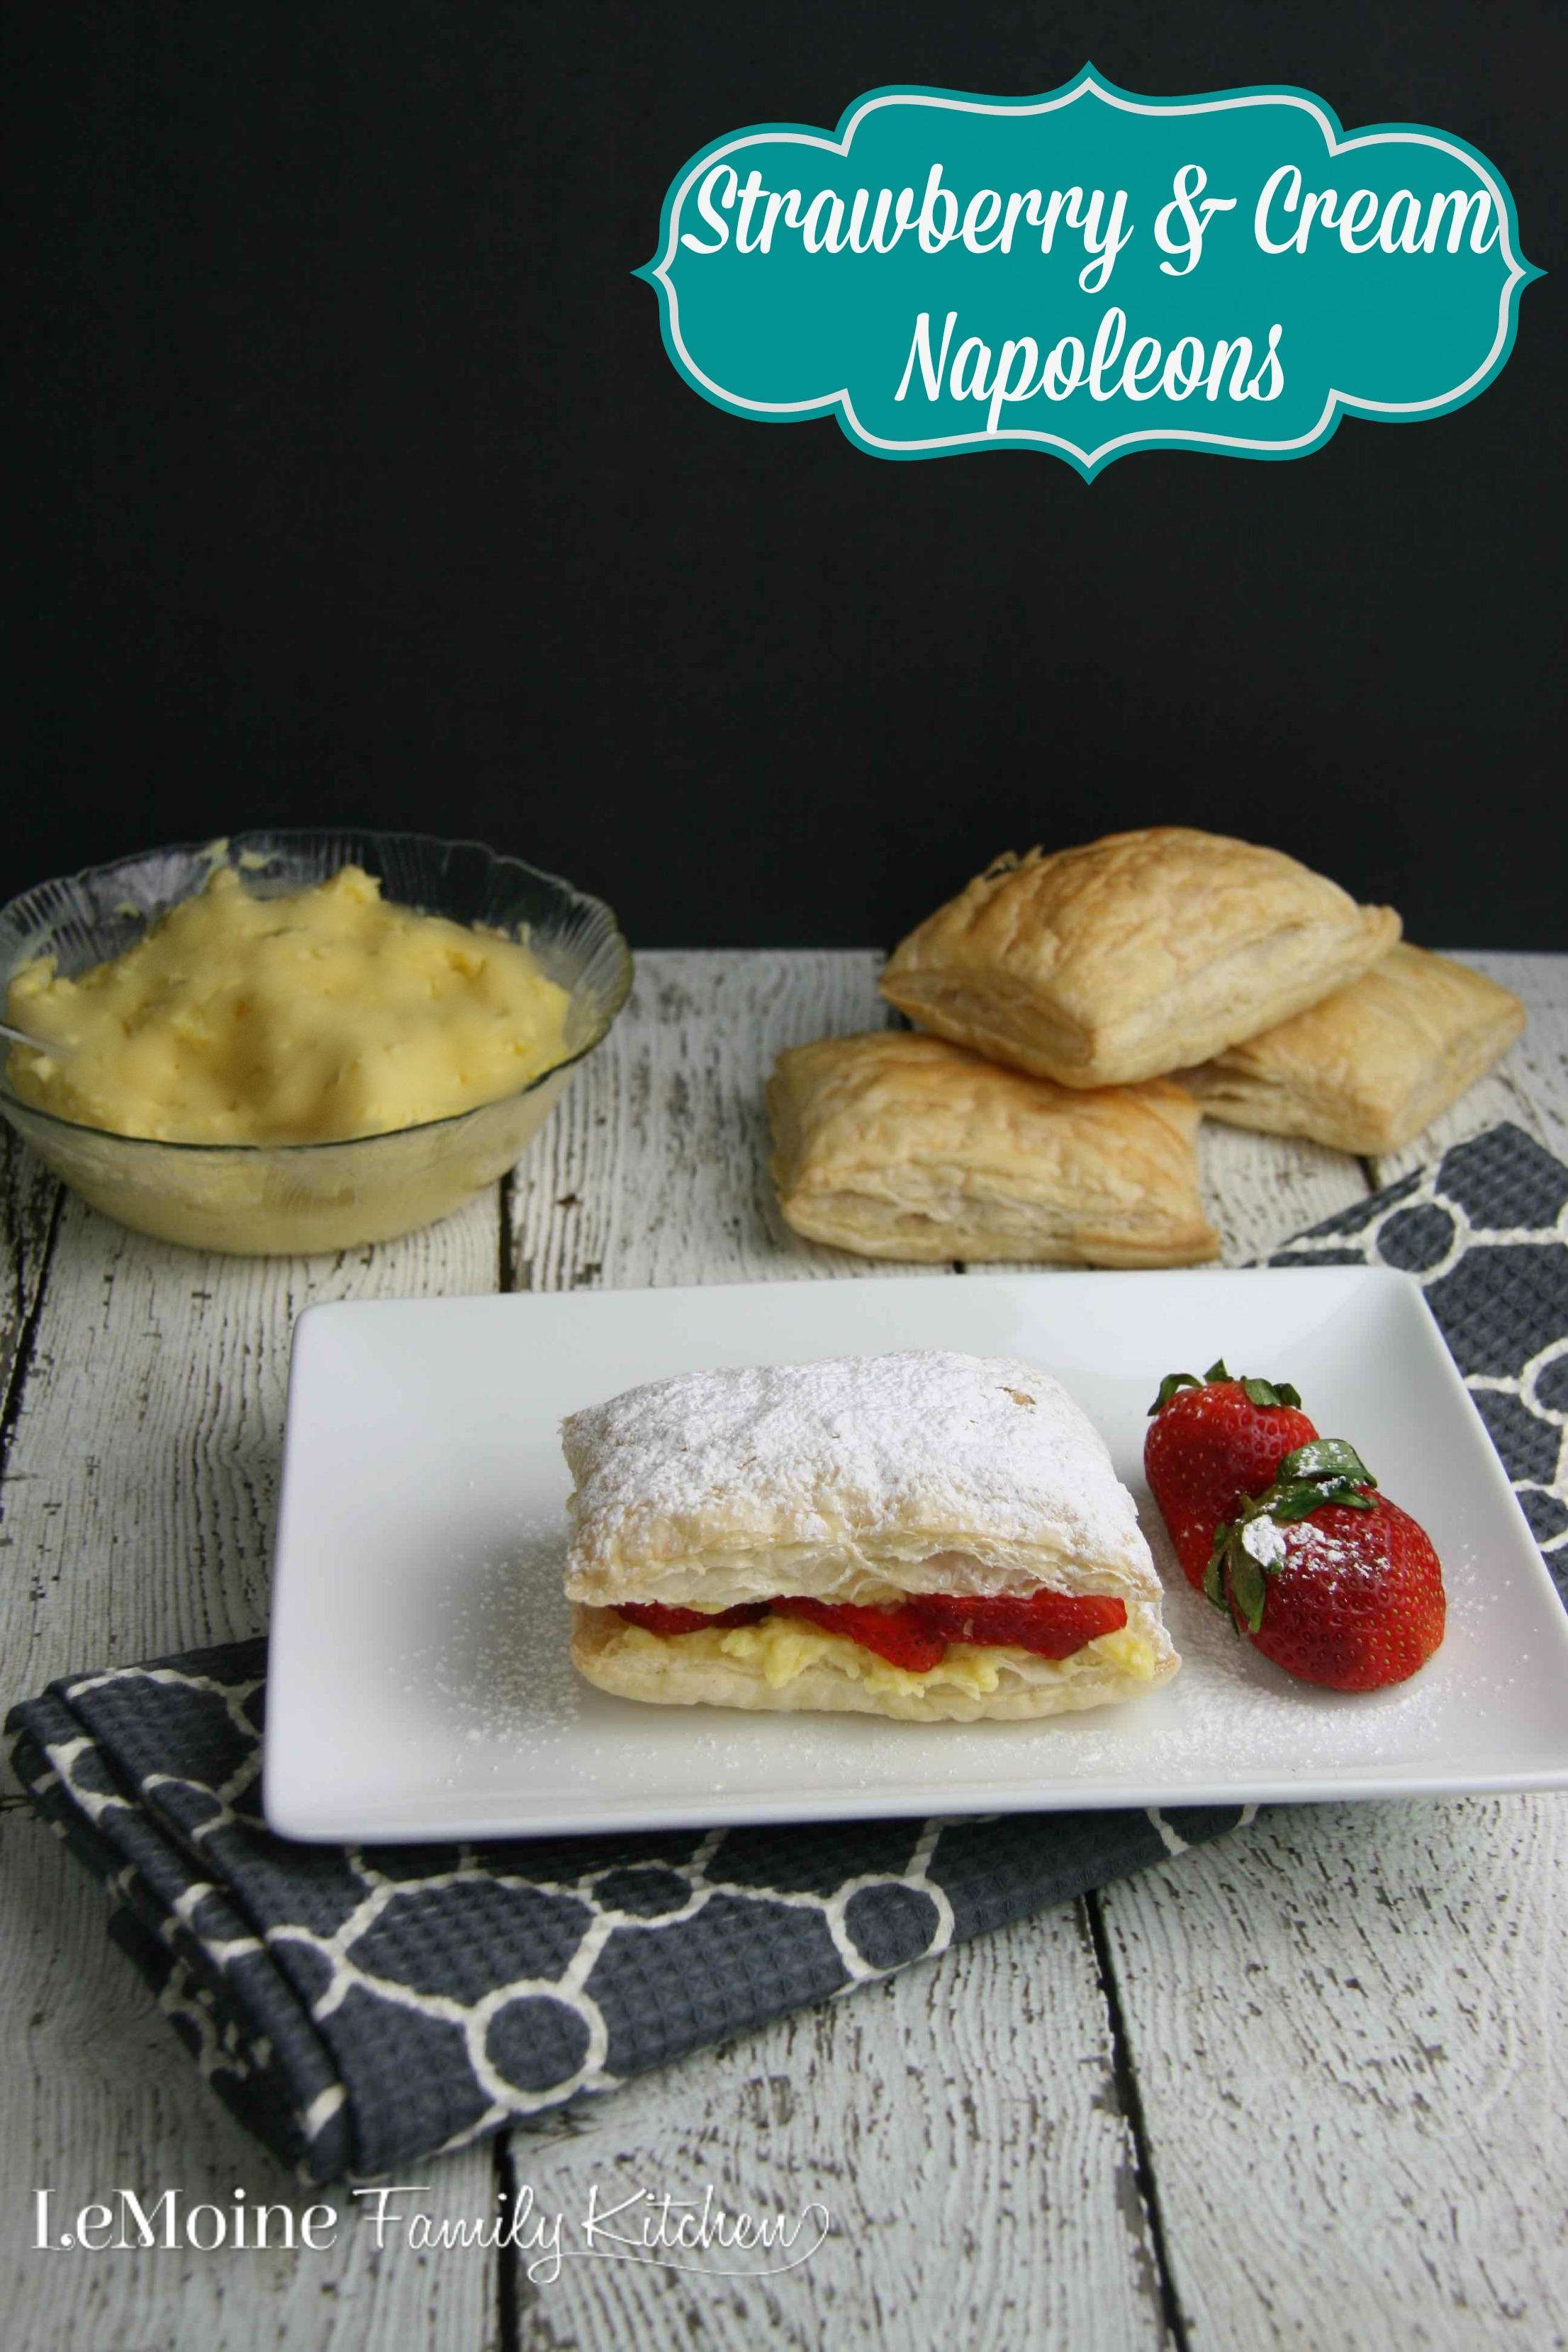 Strawberry & Cream Napoleons